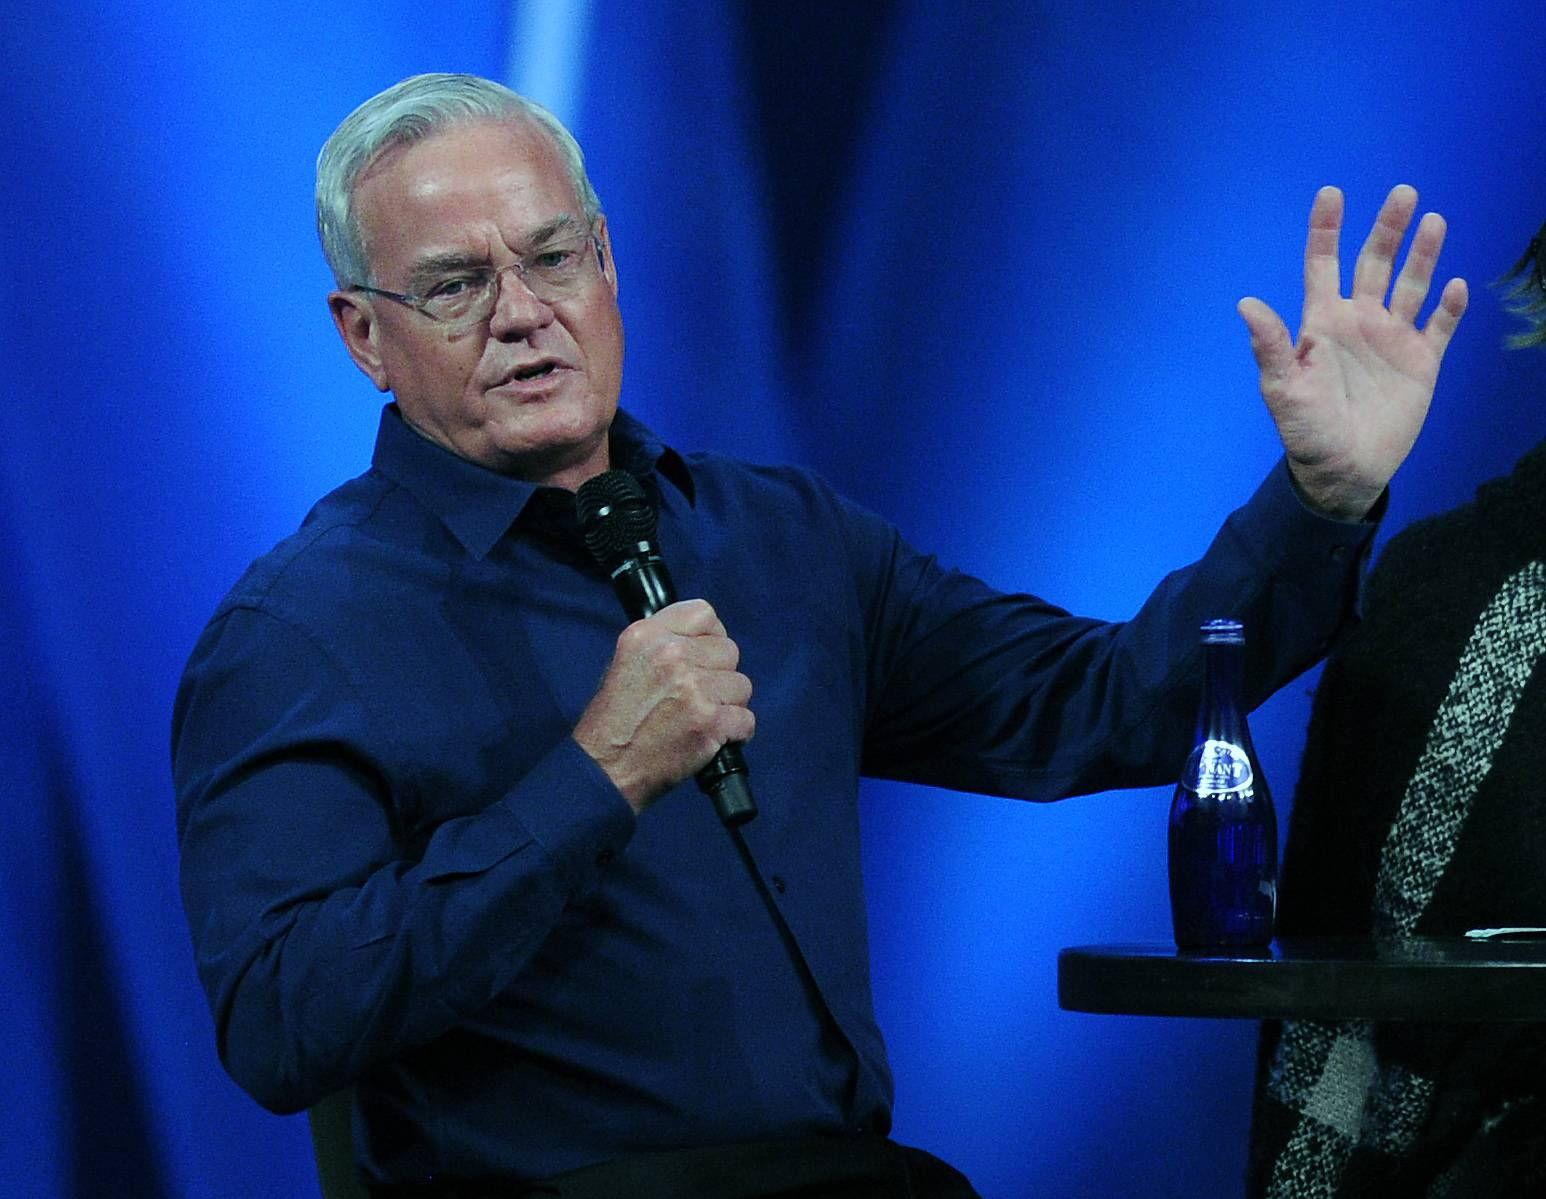 Bill Hybels on March 23 pleads his case to his congregation about the misconduct allegations involving women at Willow Creek Community Church.